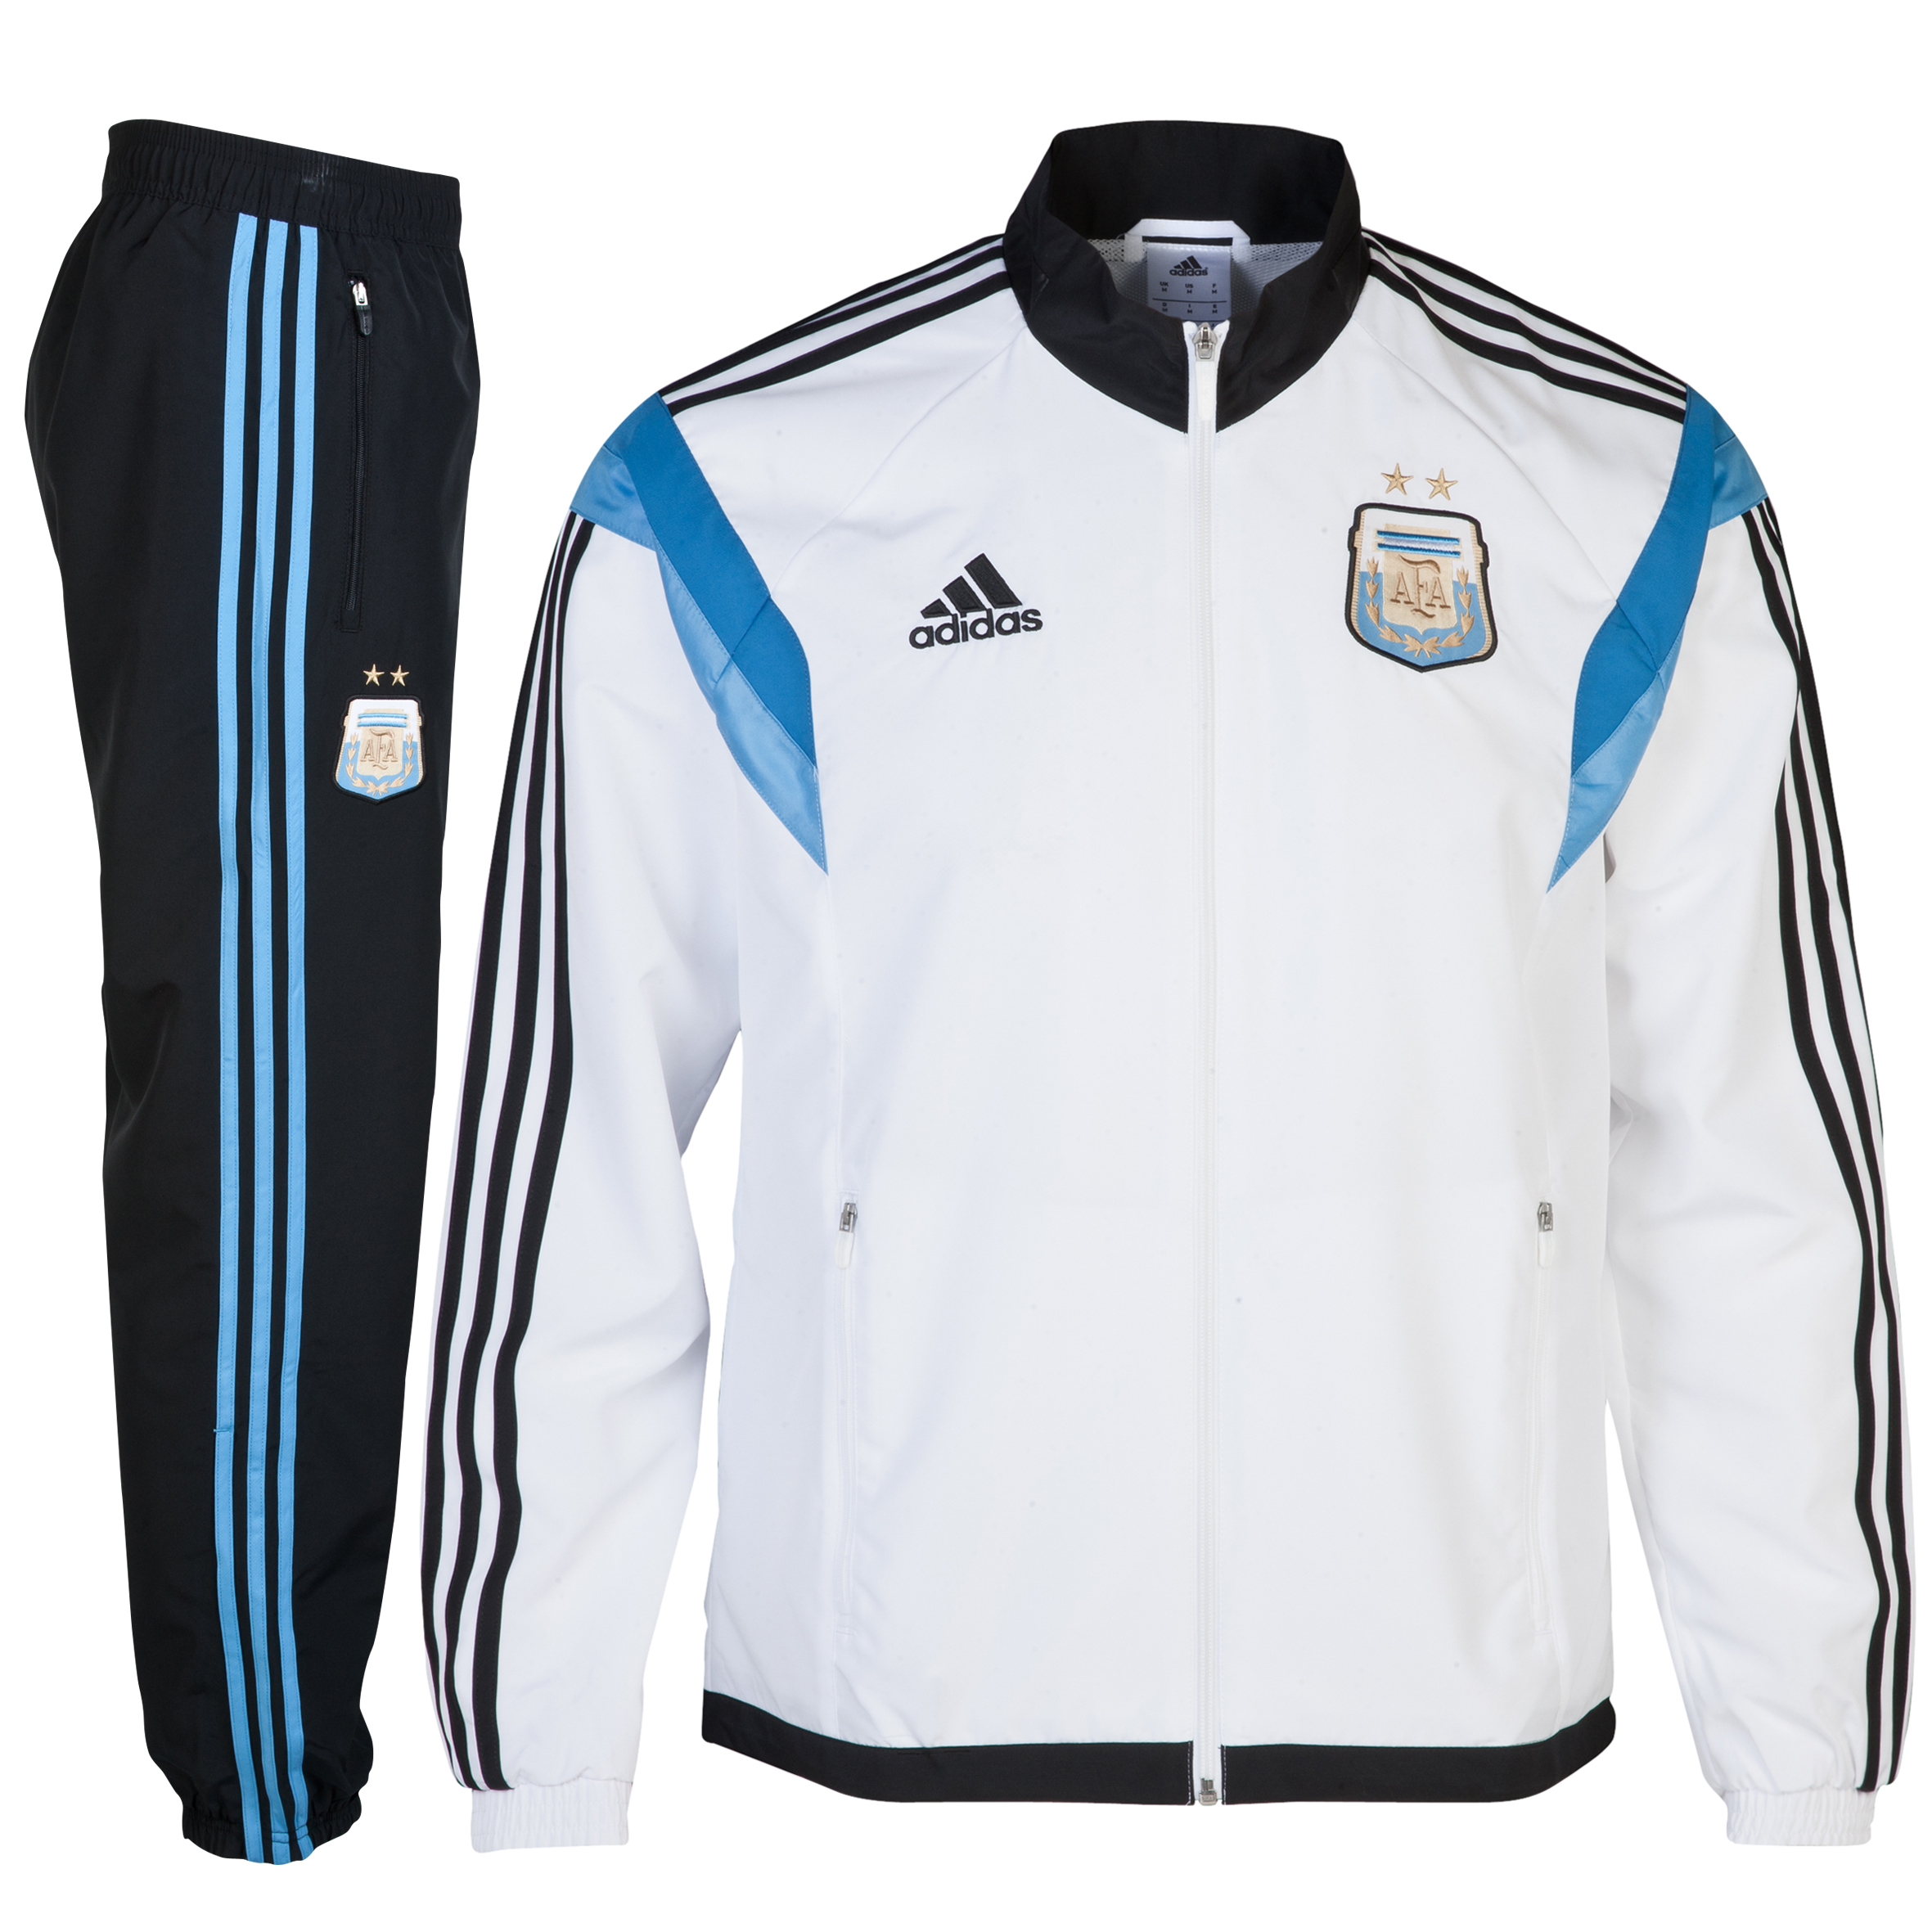 Argentina Presentation Suit - White/Black White